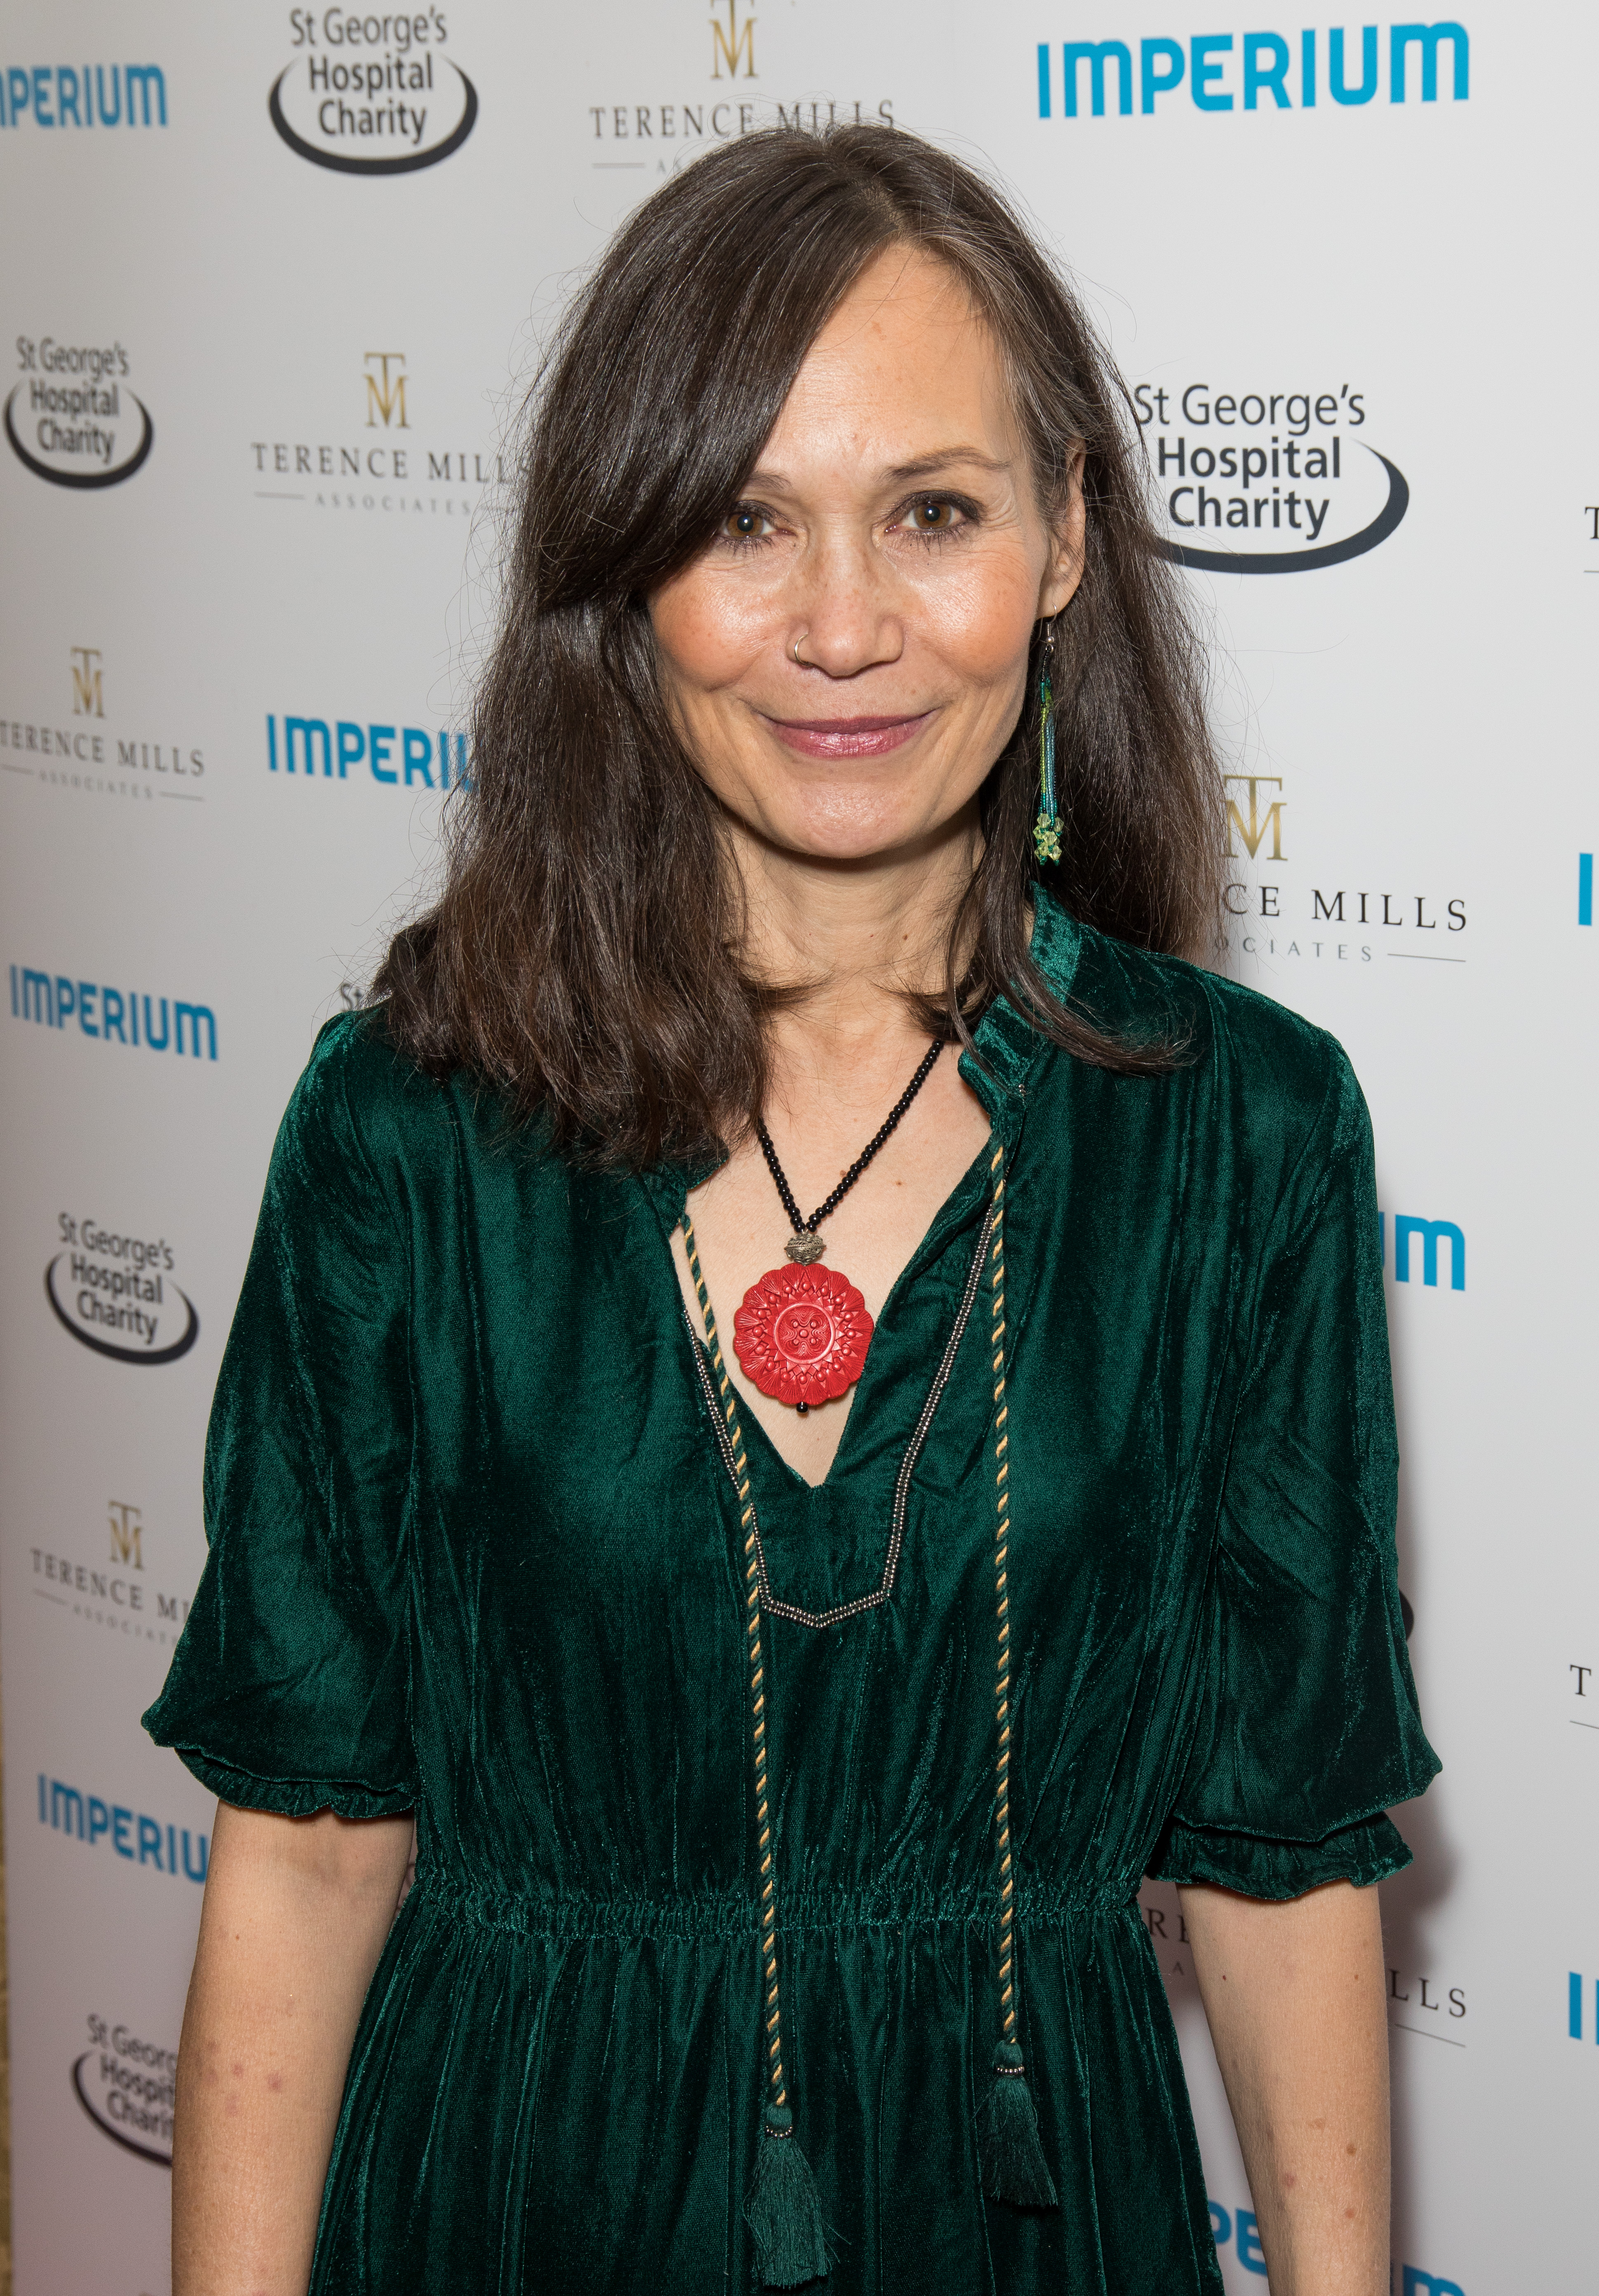 Leah Bracknell at St George's Hospital Charity event